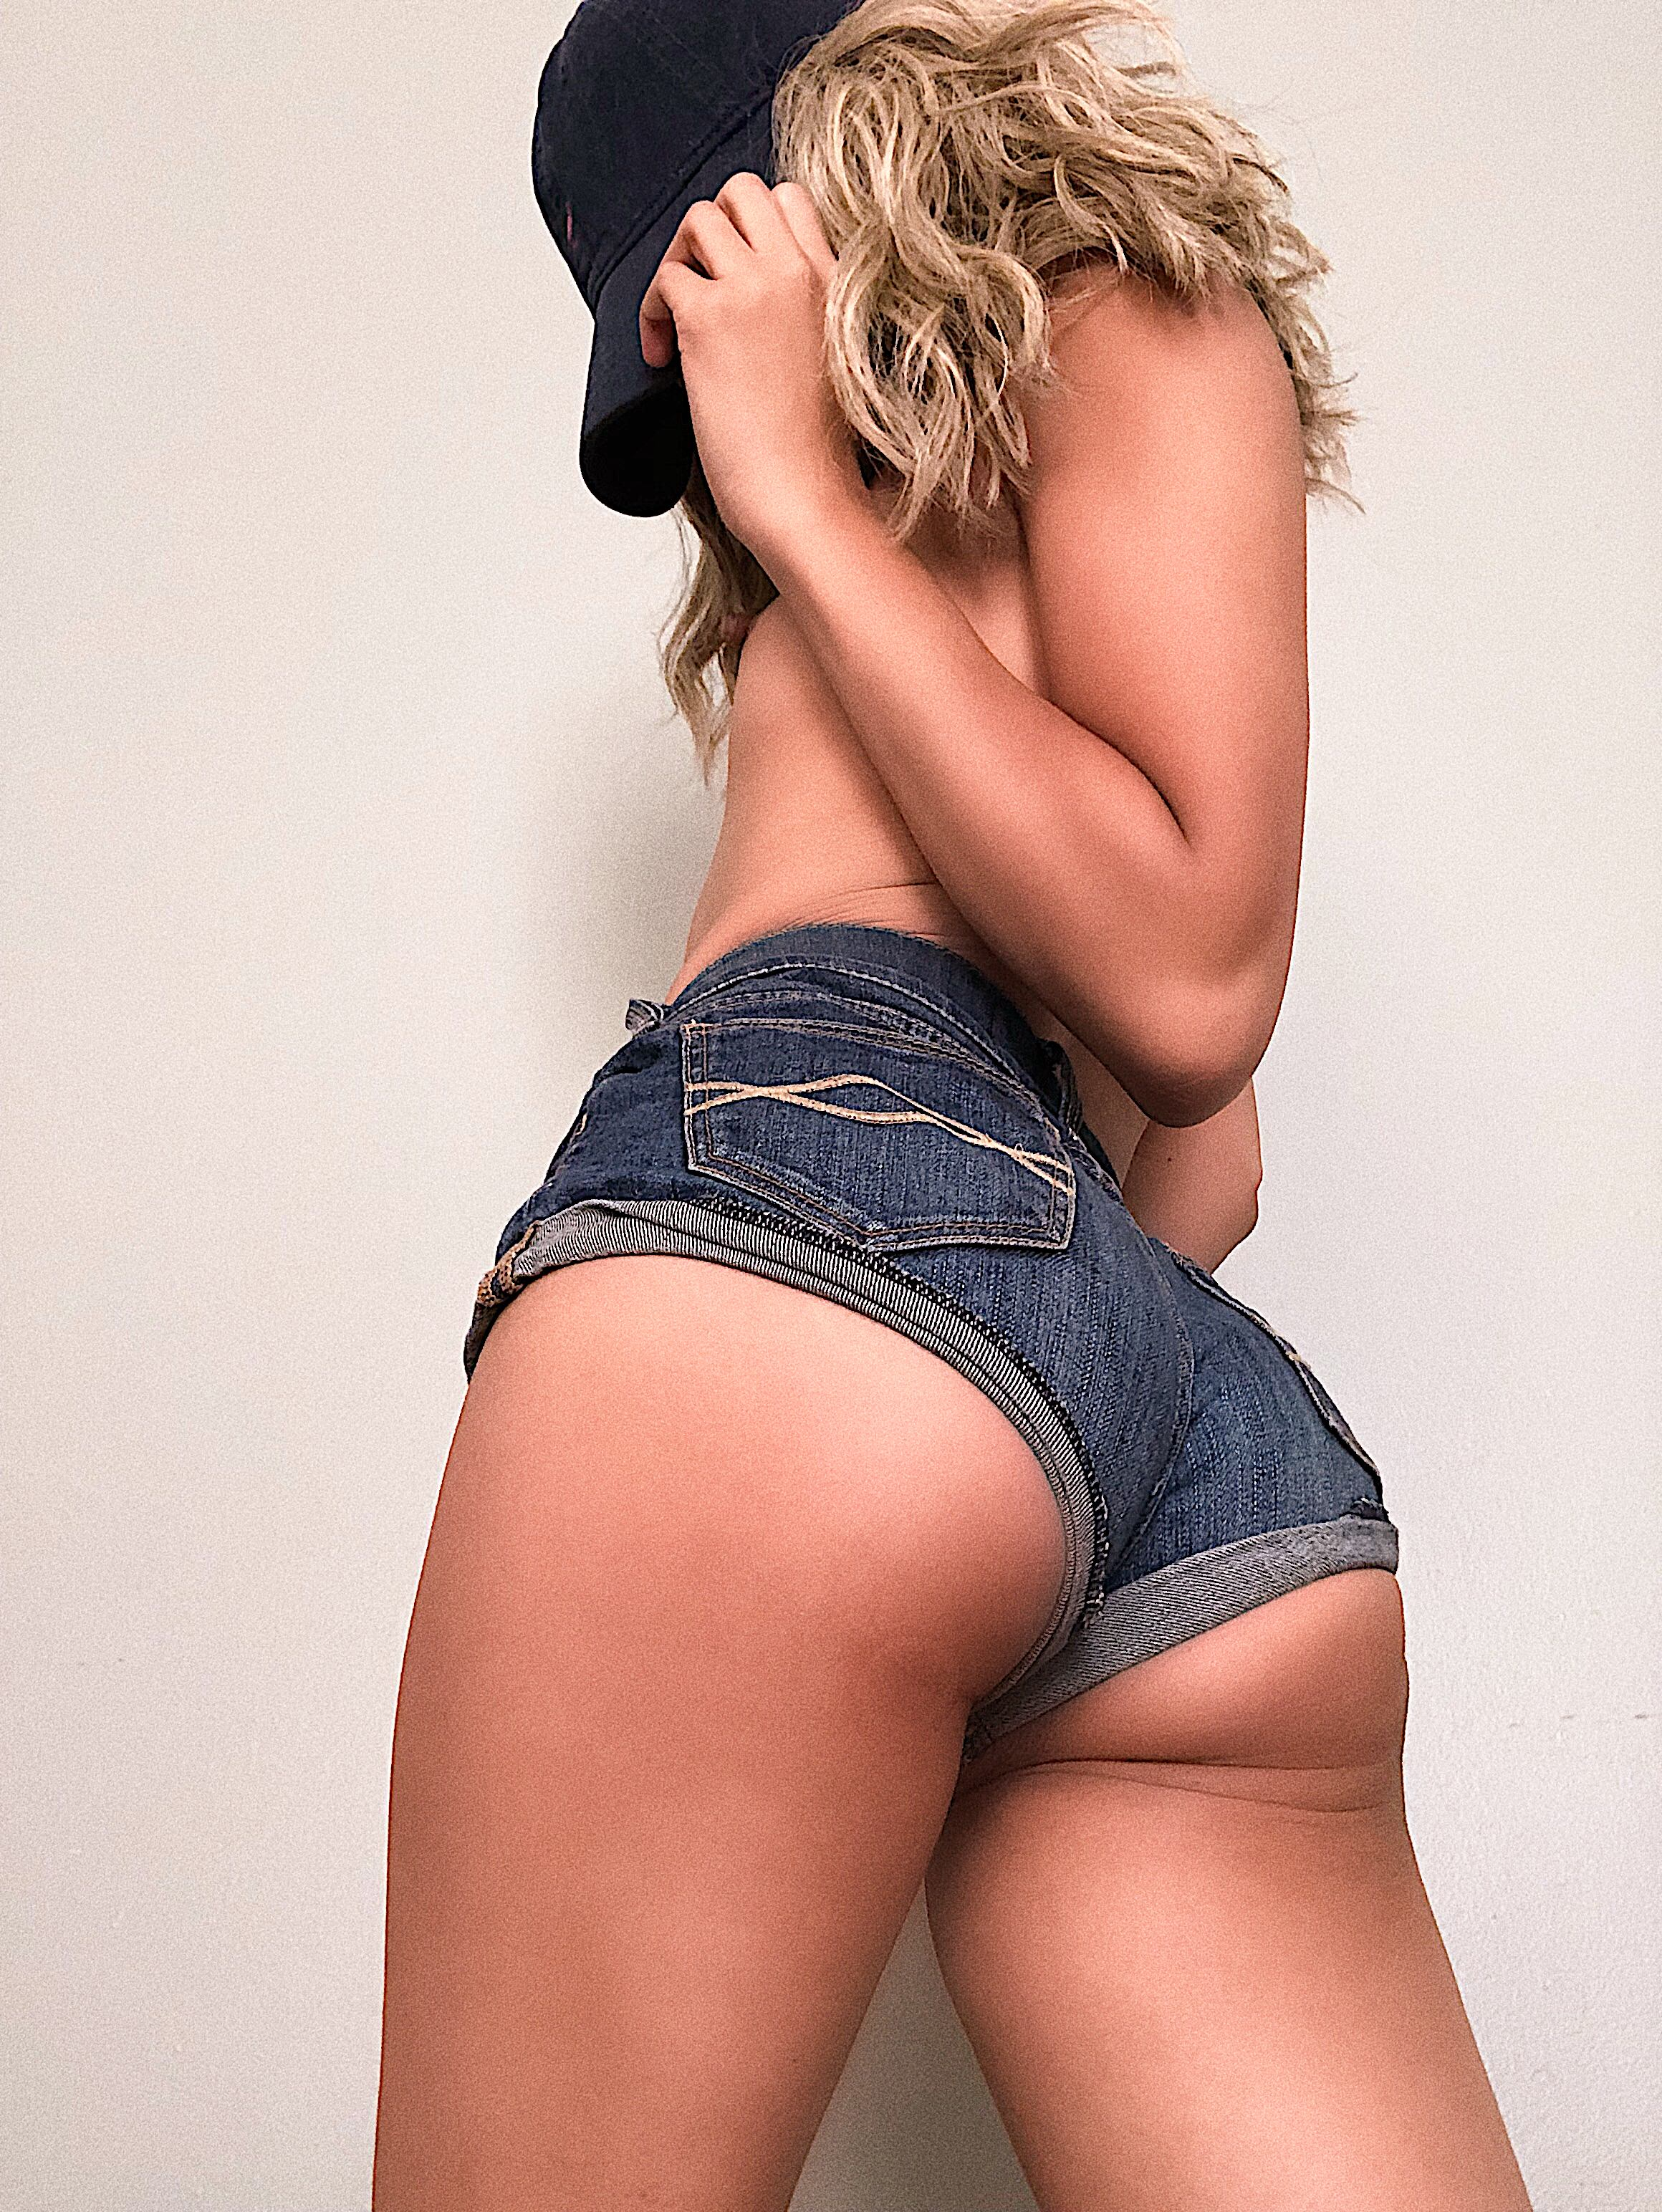 daisy dukes and ass cheeks Porn Pic - EPORNER